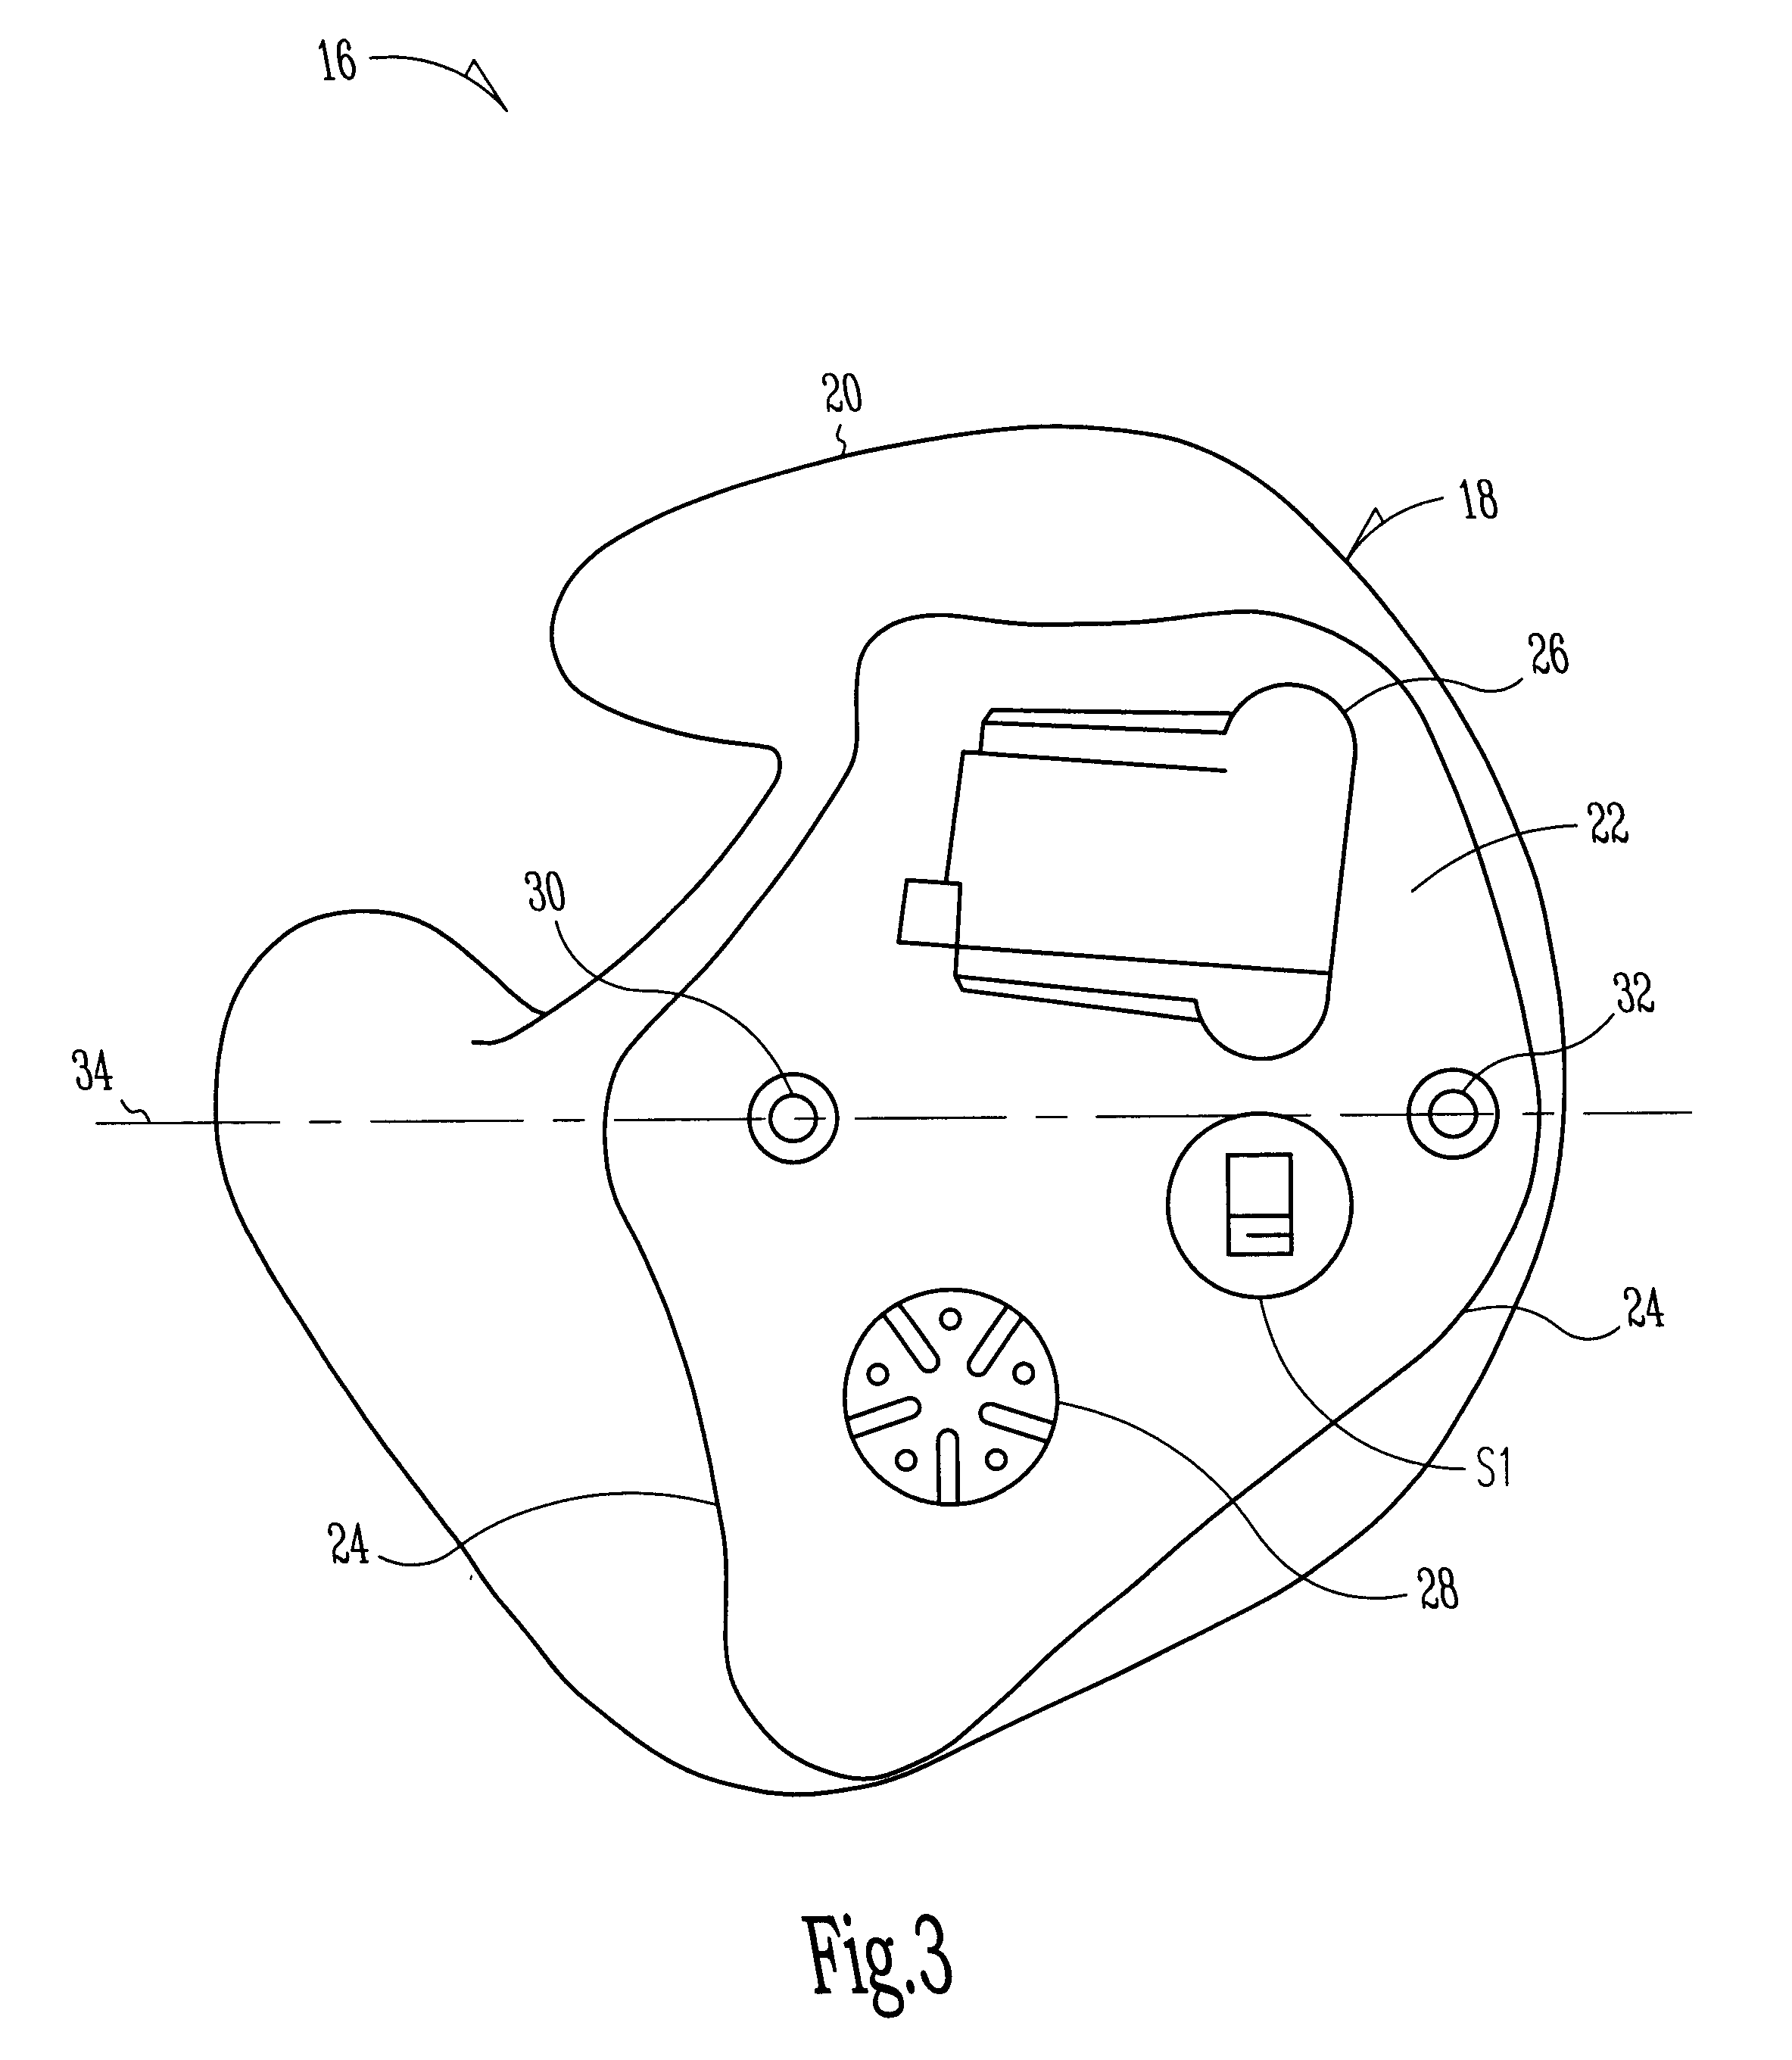 patent us6389142 - in-the-ear hearing aid with directional microphone system